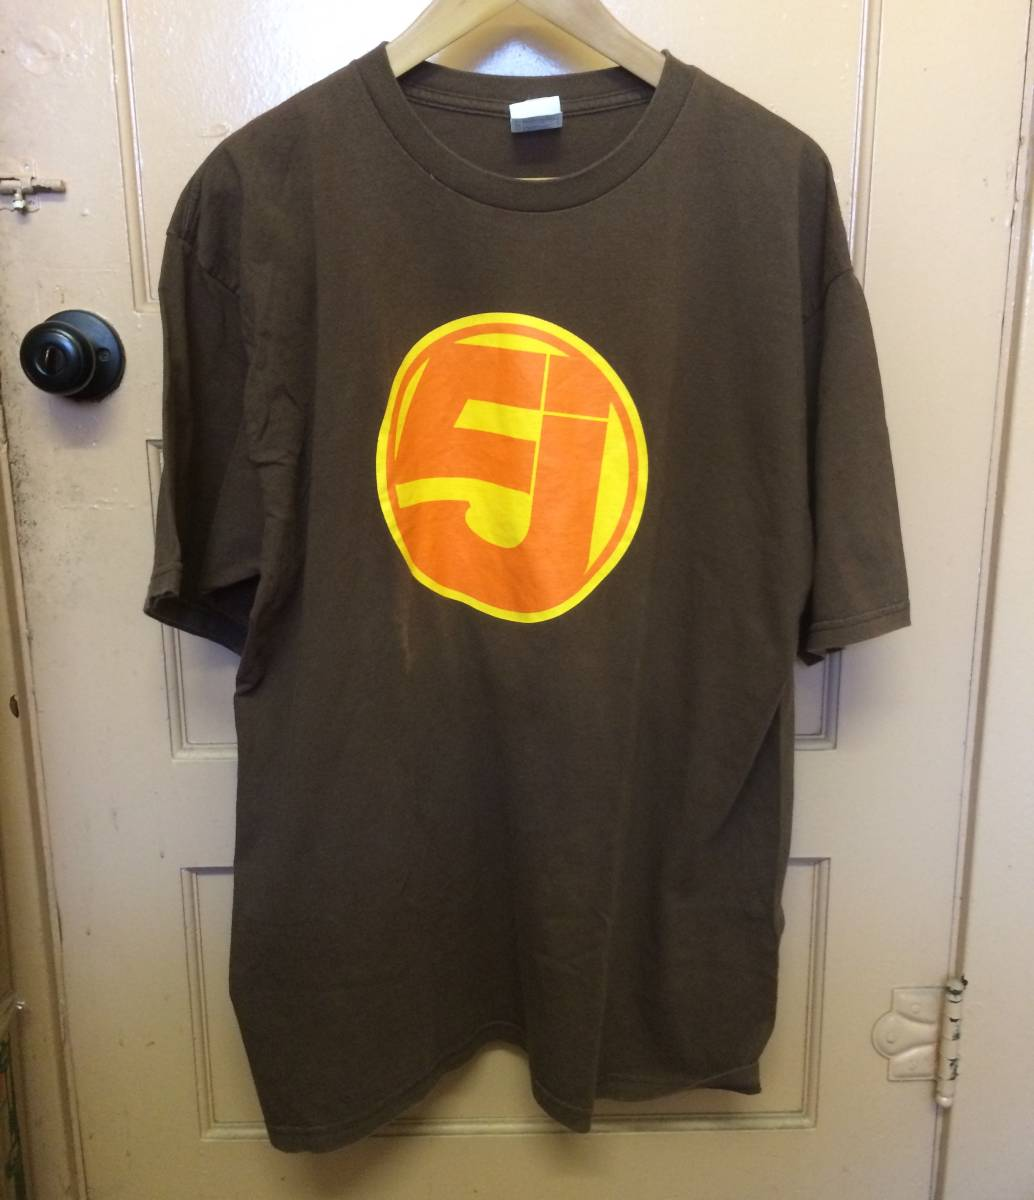 レア JURASSIC 5 ビンテージ Tシャツ CUT CHEMIST DJ SHADOW PABLO nirvana rap tee XL 2002